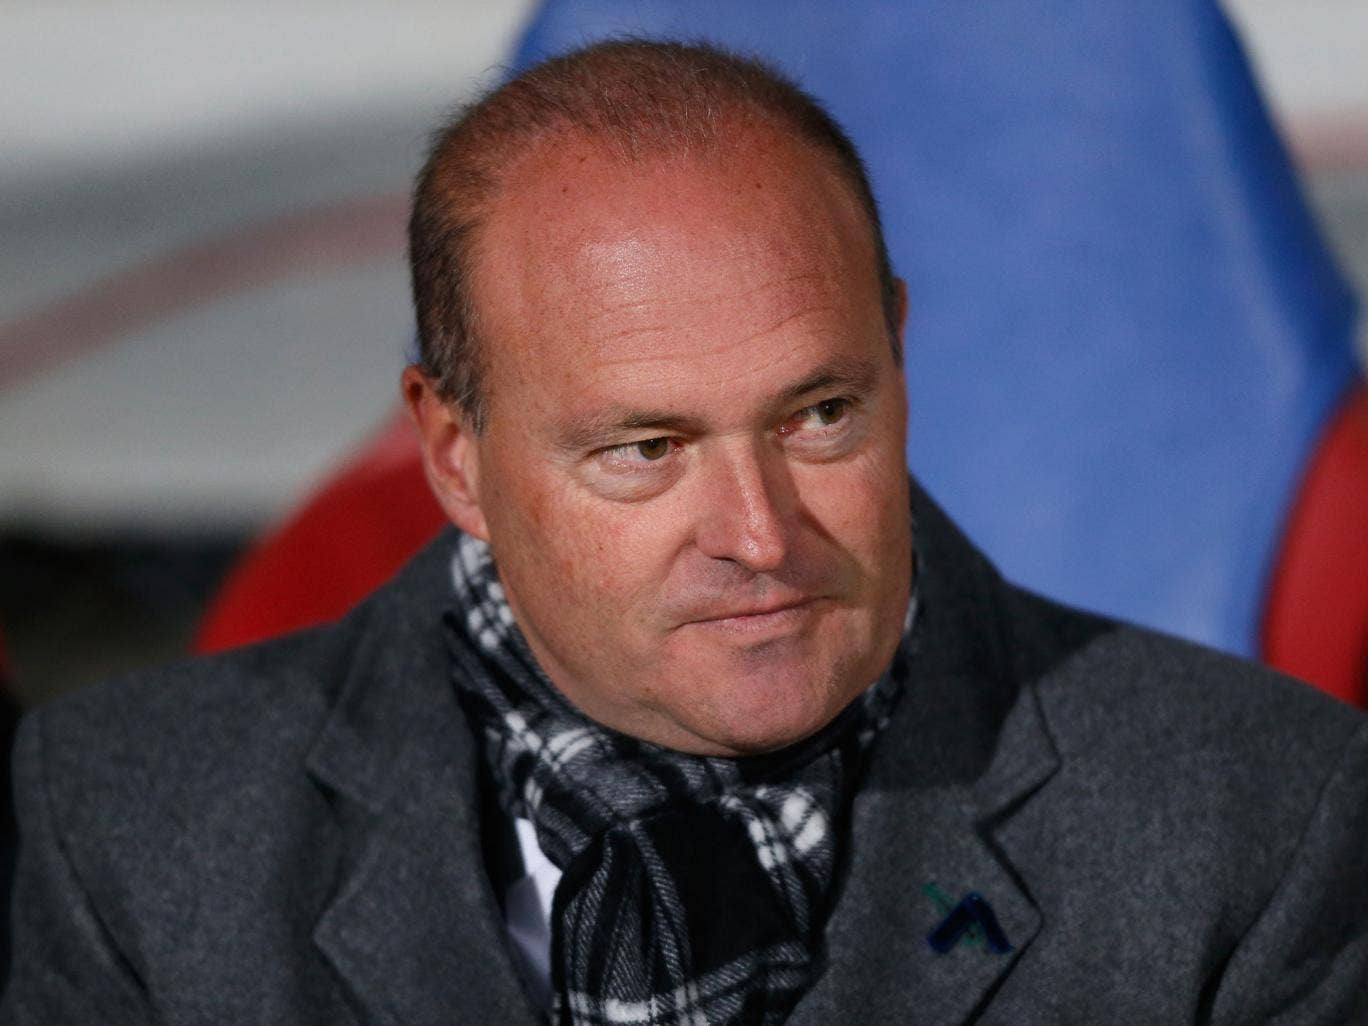 West Brom's new manager Pepe Mel will watch from the stands during Saturday's Premier League encounter with Southampton